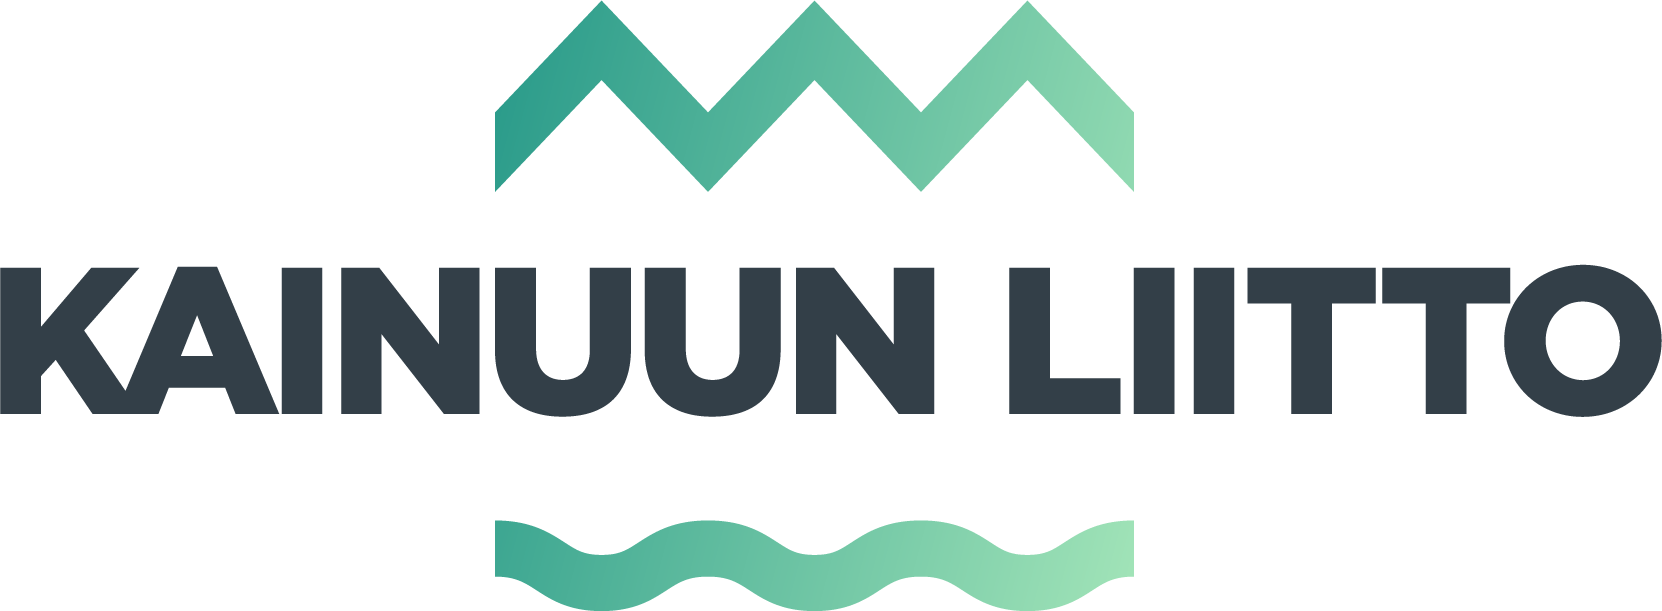 kainuunliitto-logo